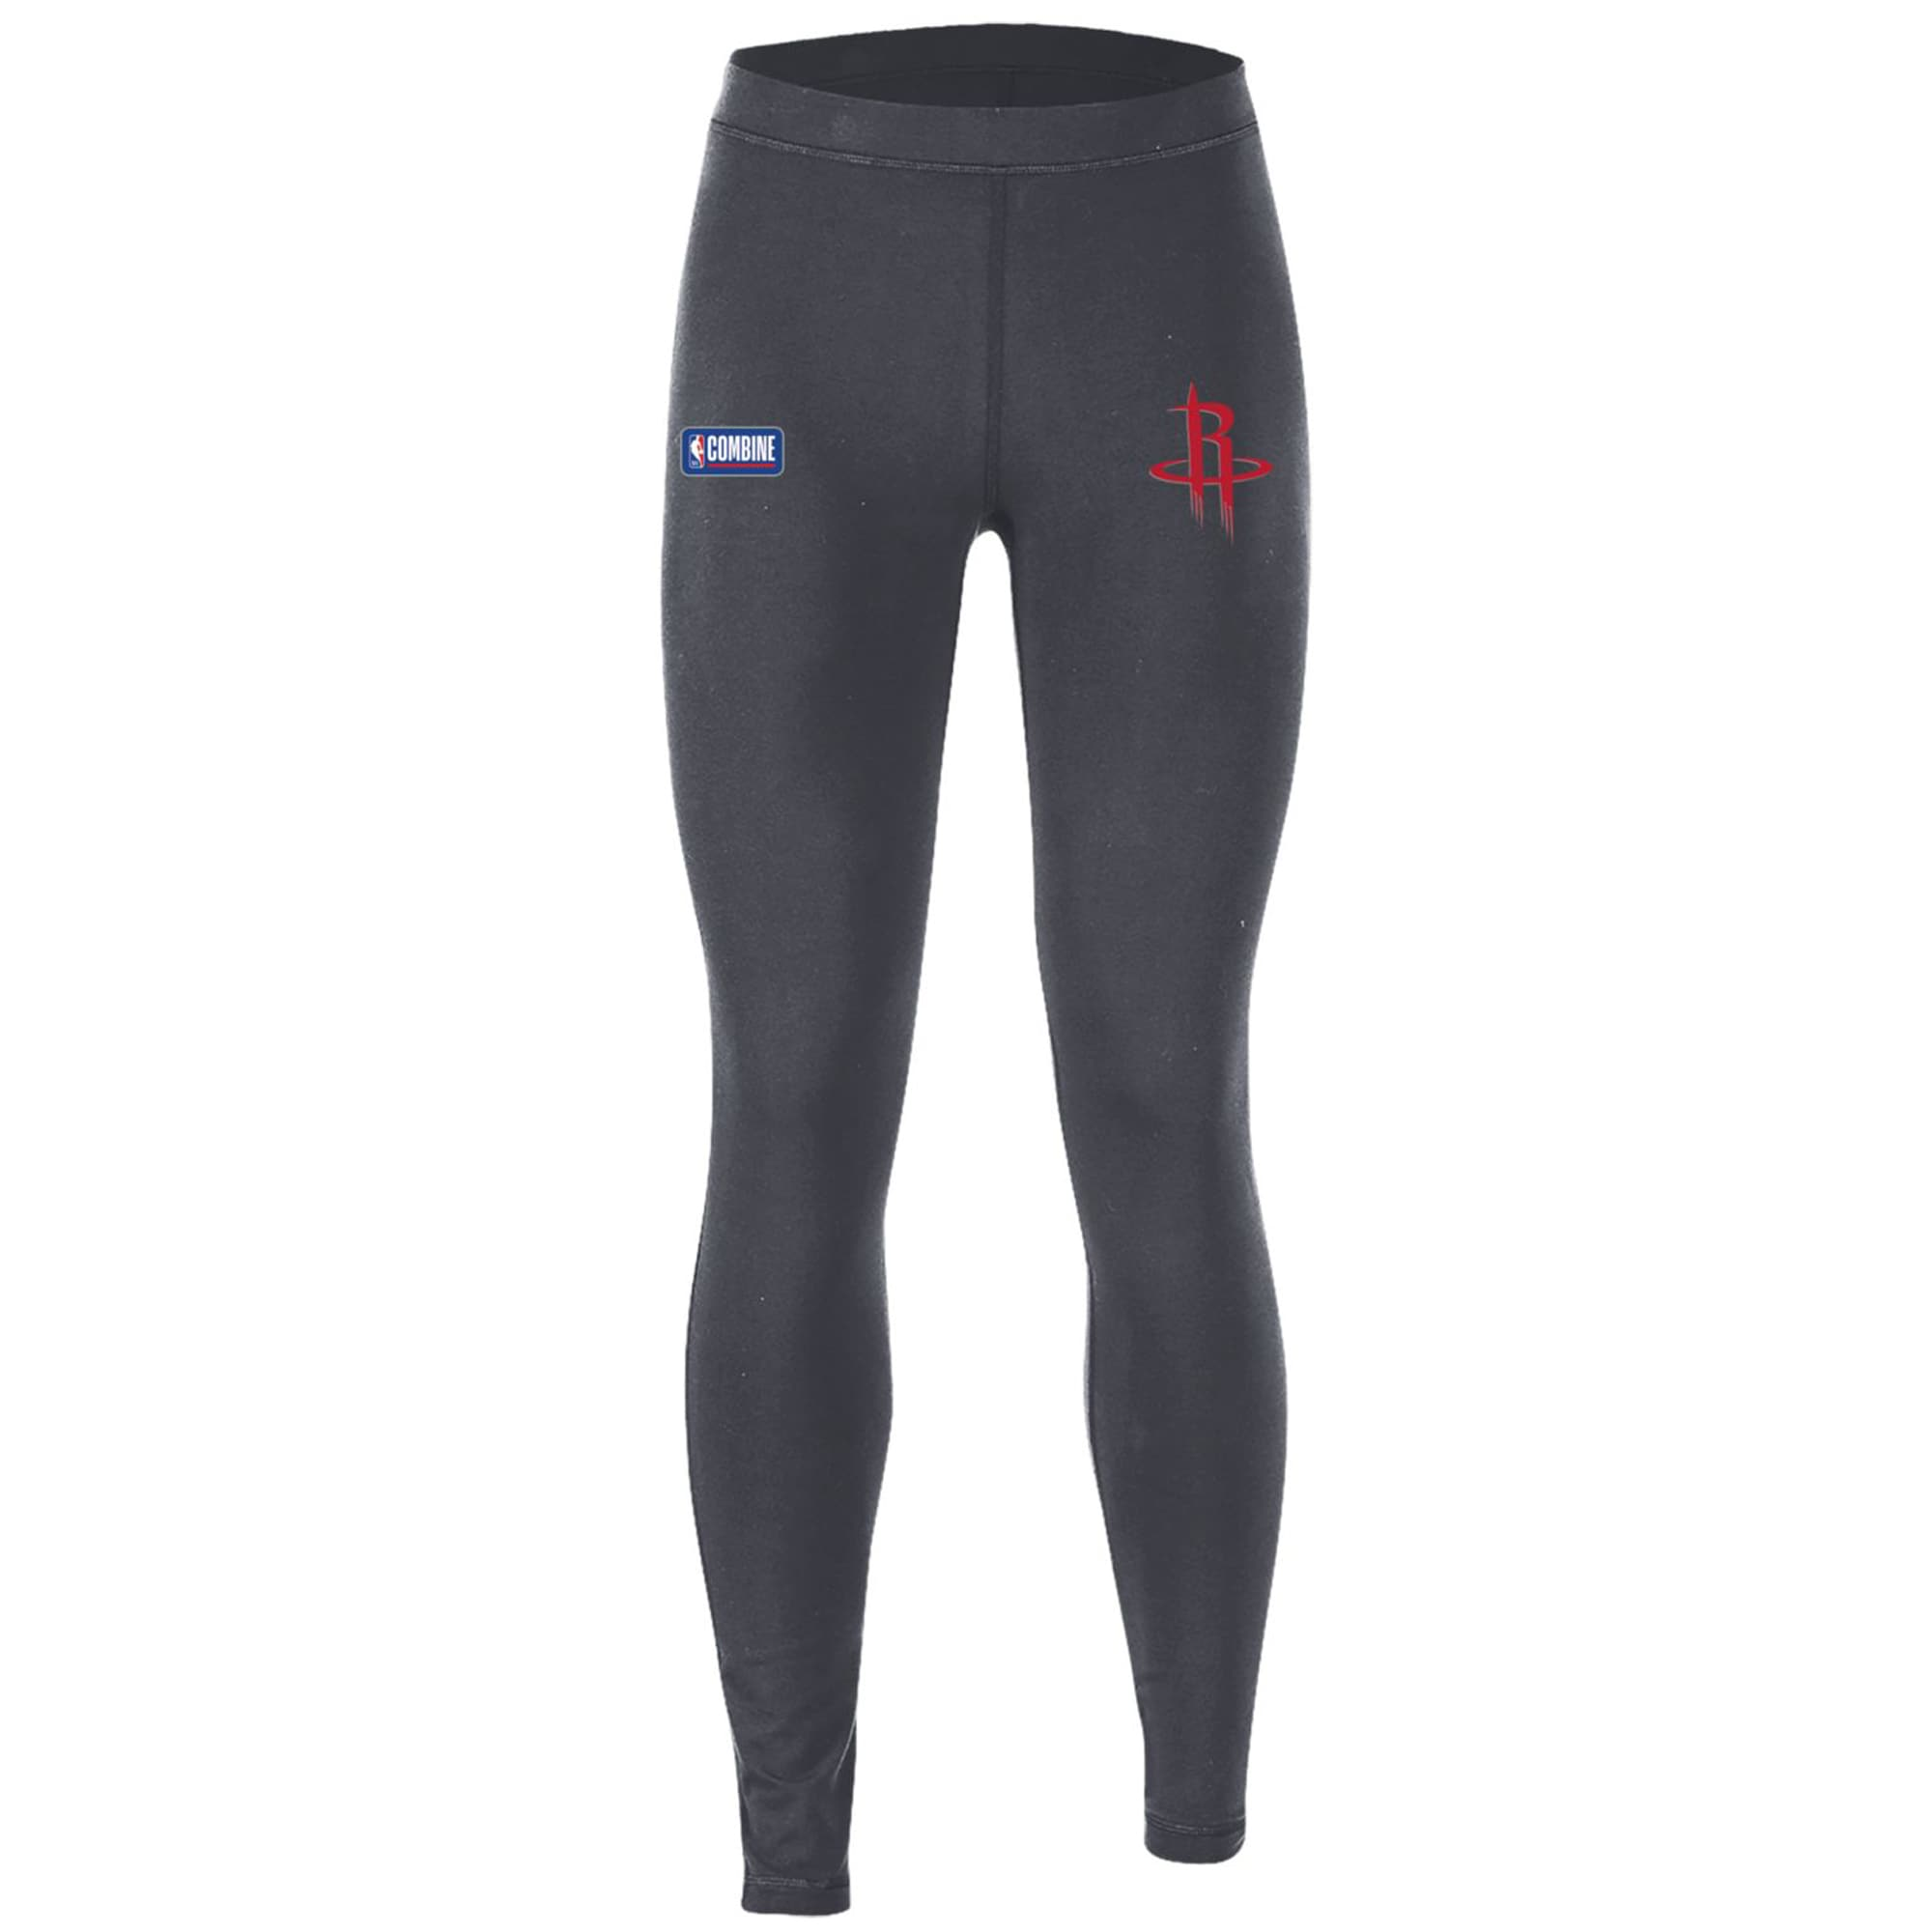 Houston Rockets Under Armour Women's Combine Authentic Favorites Performance Leggings - Heathered Charcoal